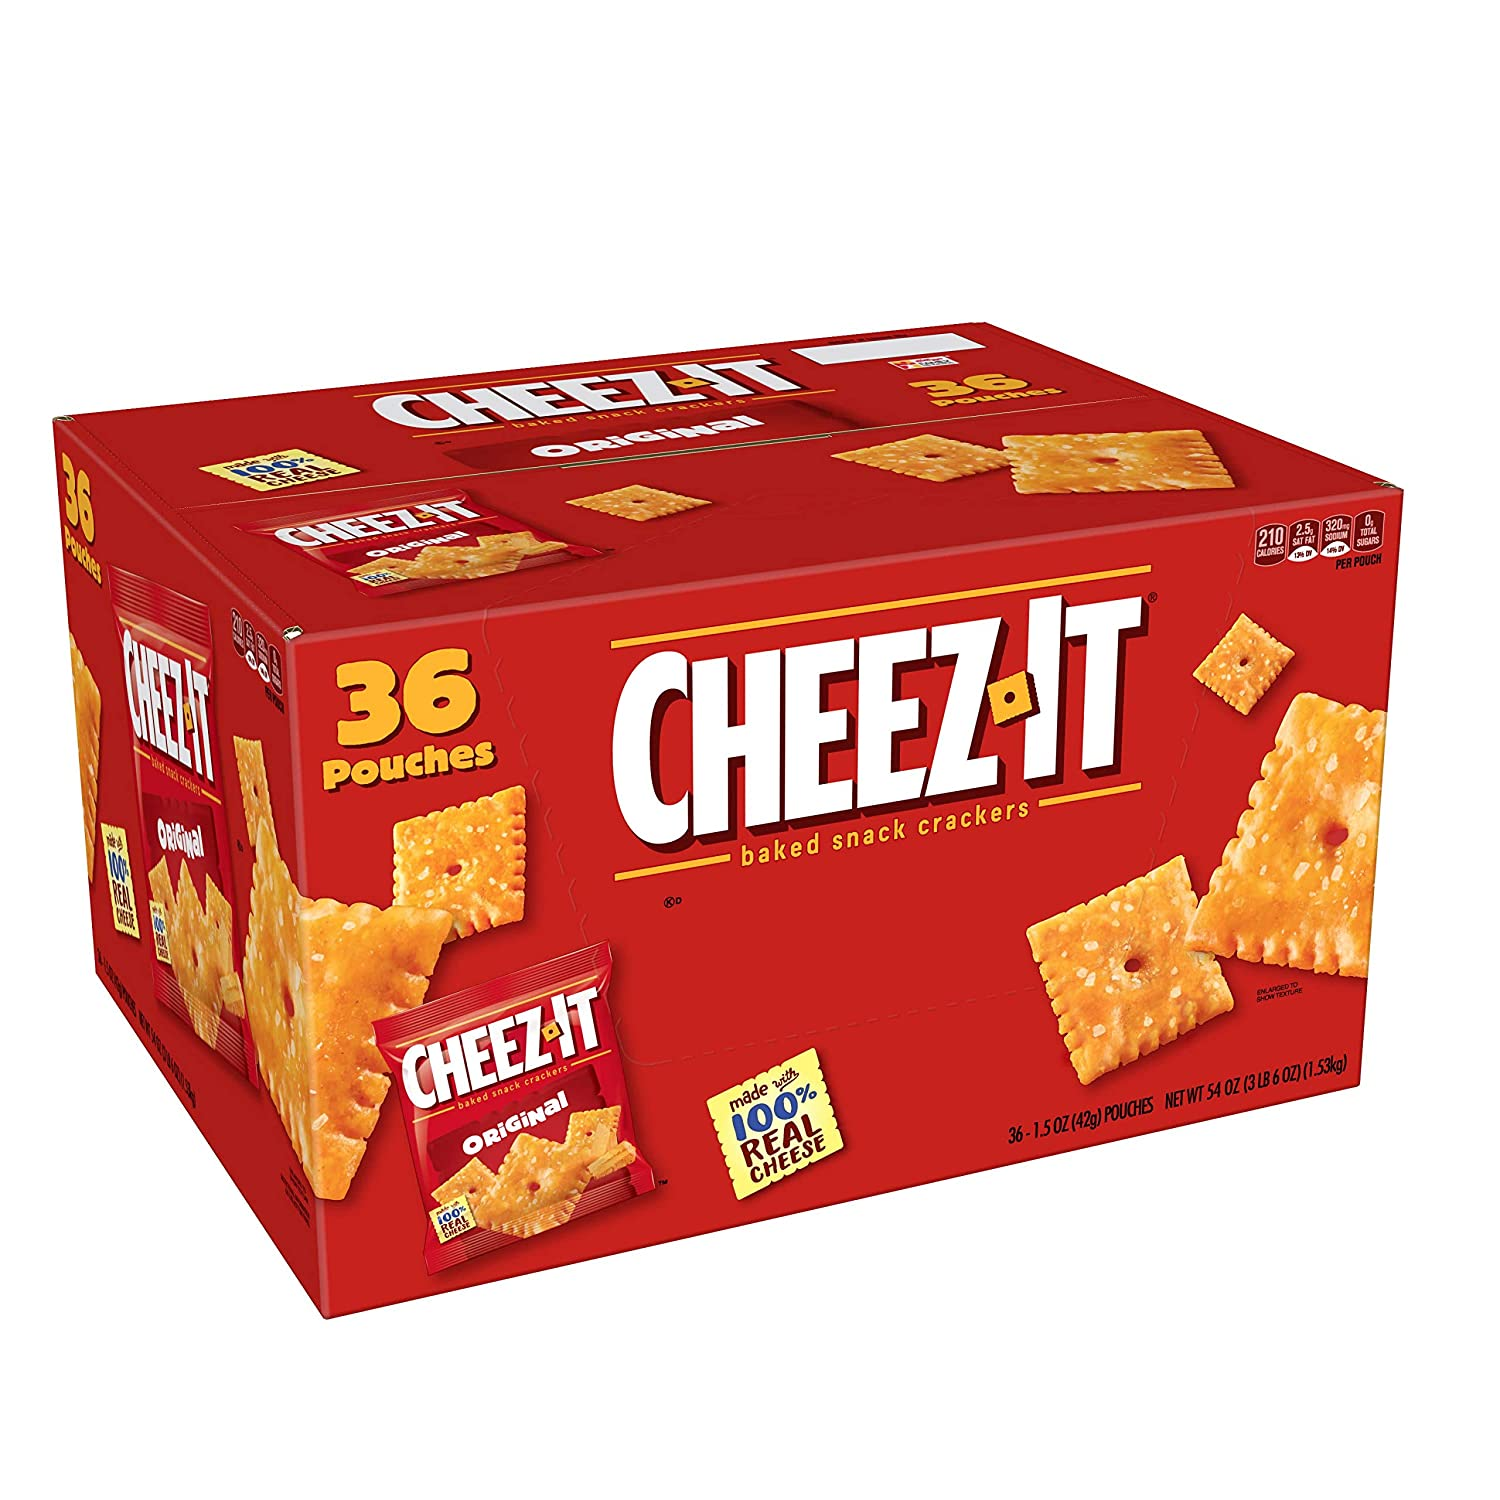 Cheez-It Original Cheese Crackers - School Lunch Food, Baked Snack, Single Serve,1.5 Ounce bag (36 Count)